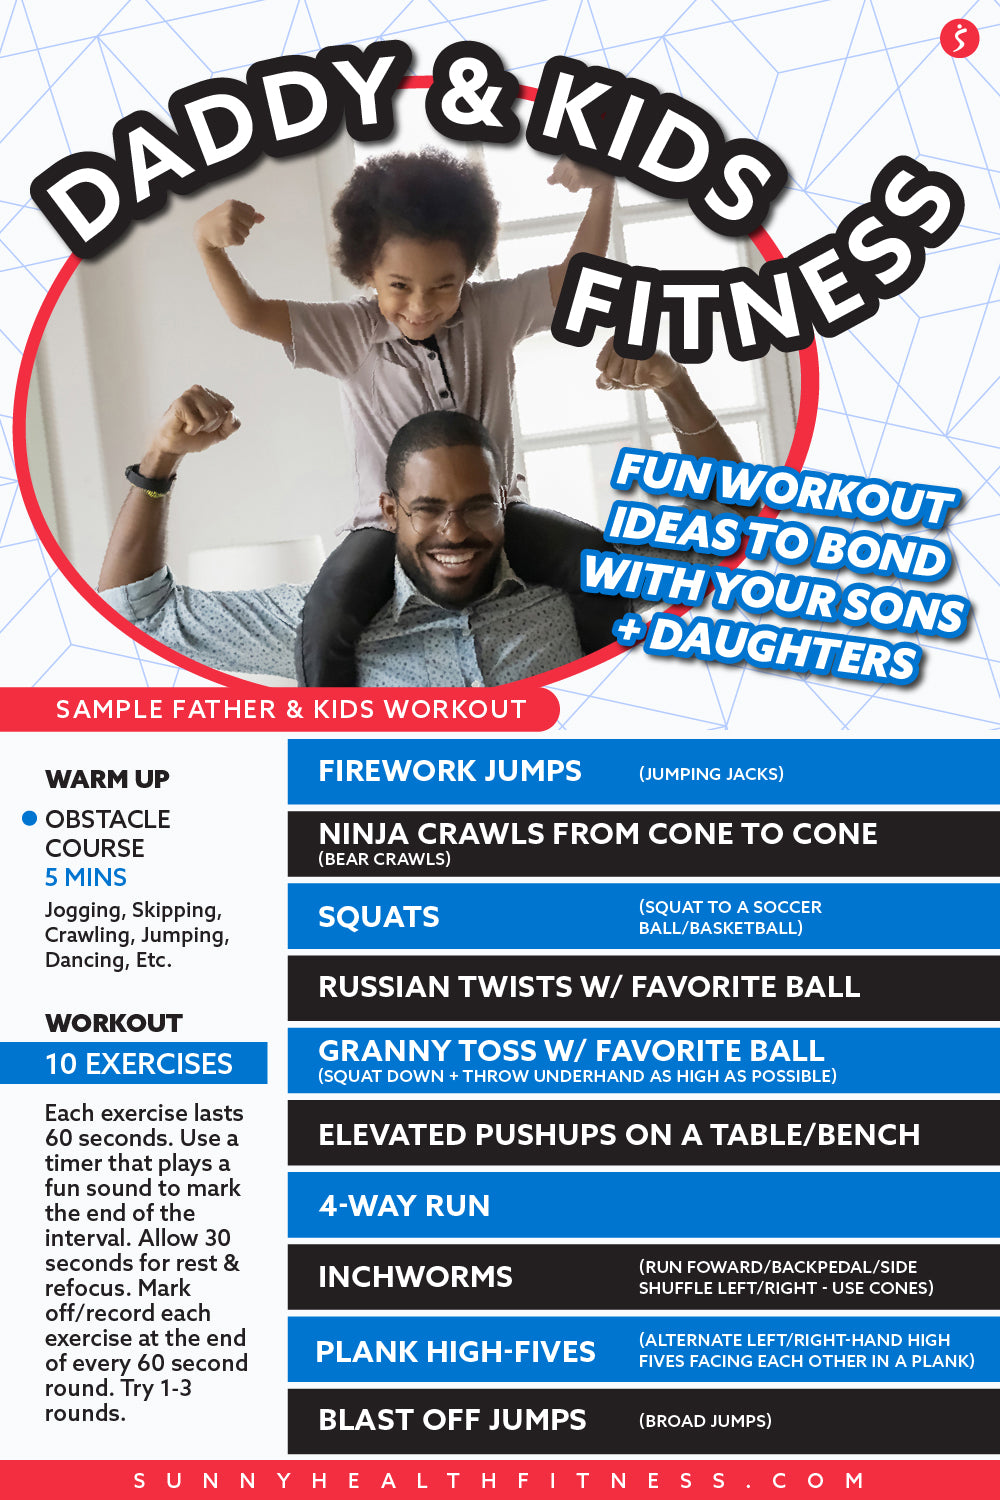 Best Workouts To Do for Fathers to Bond with Sons and Daughters